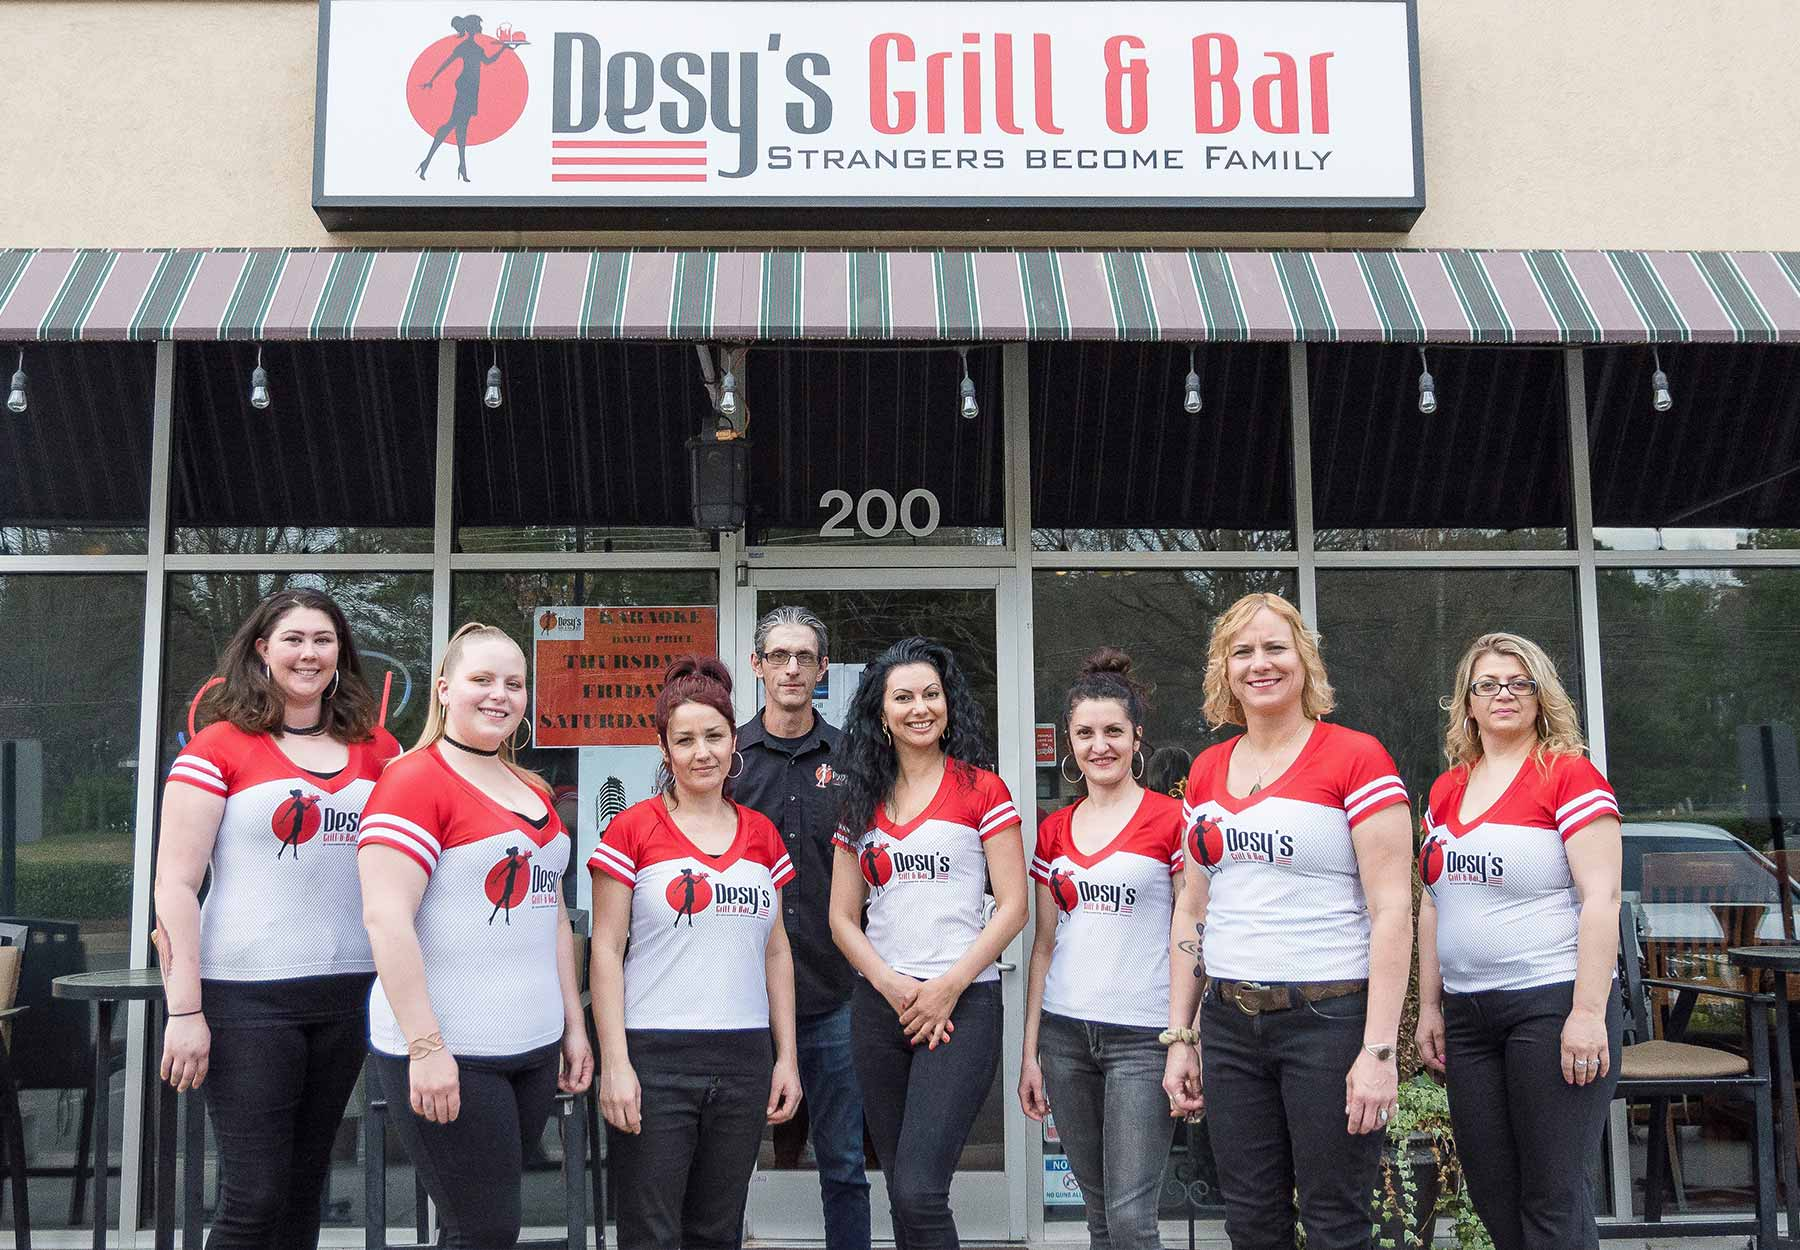 Desy's Grill and Bar